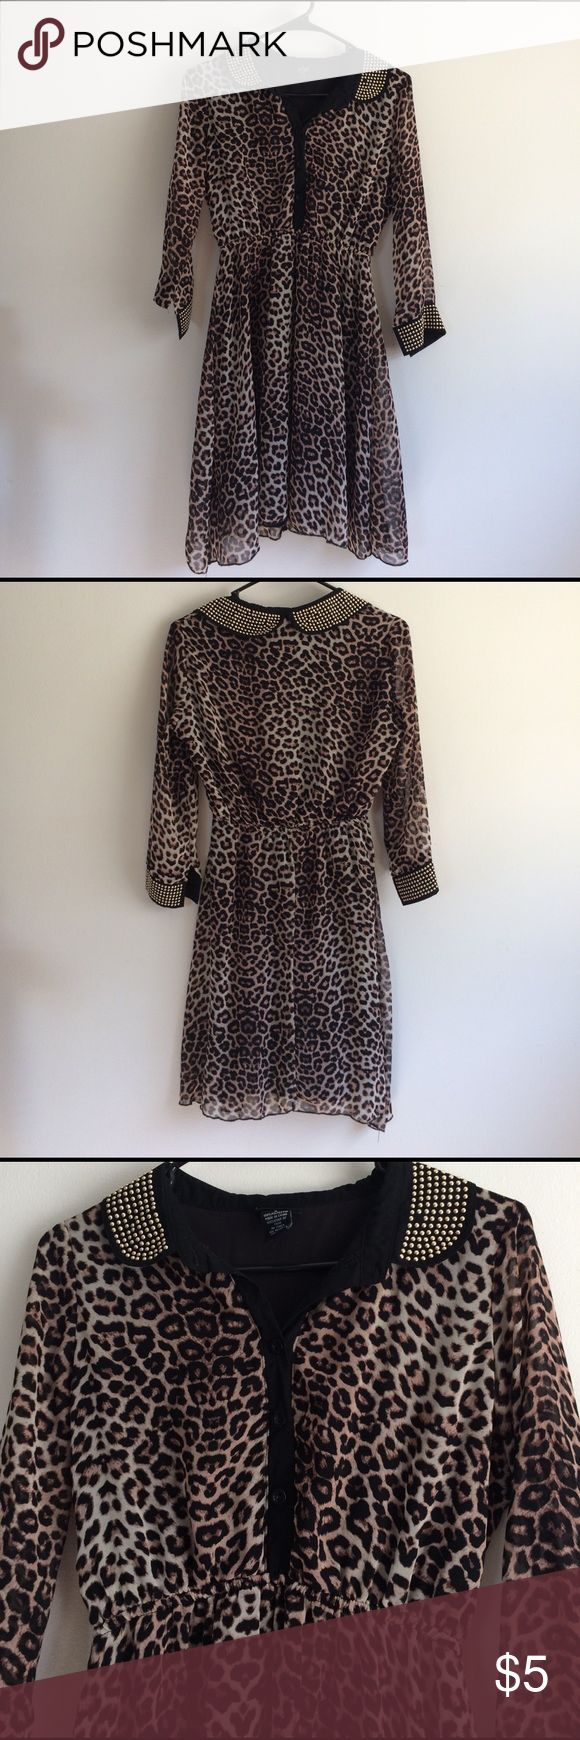 ♻️ REPOSH Button Up Cheetah Dress ♻️ REPOSH Cheetah dress that has a top button up and gold accents. Rue 21 Dresses